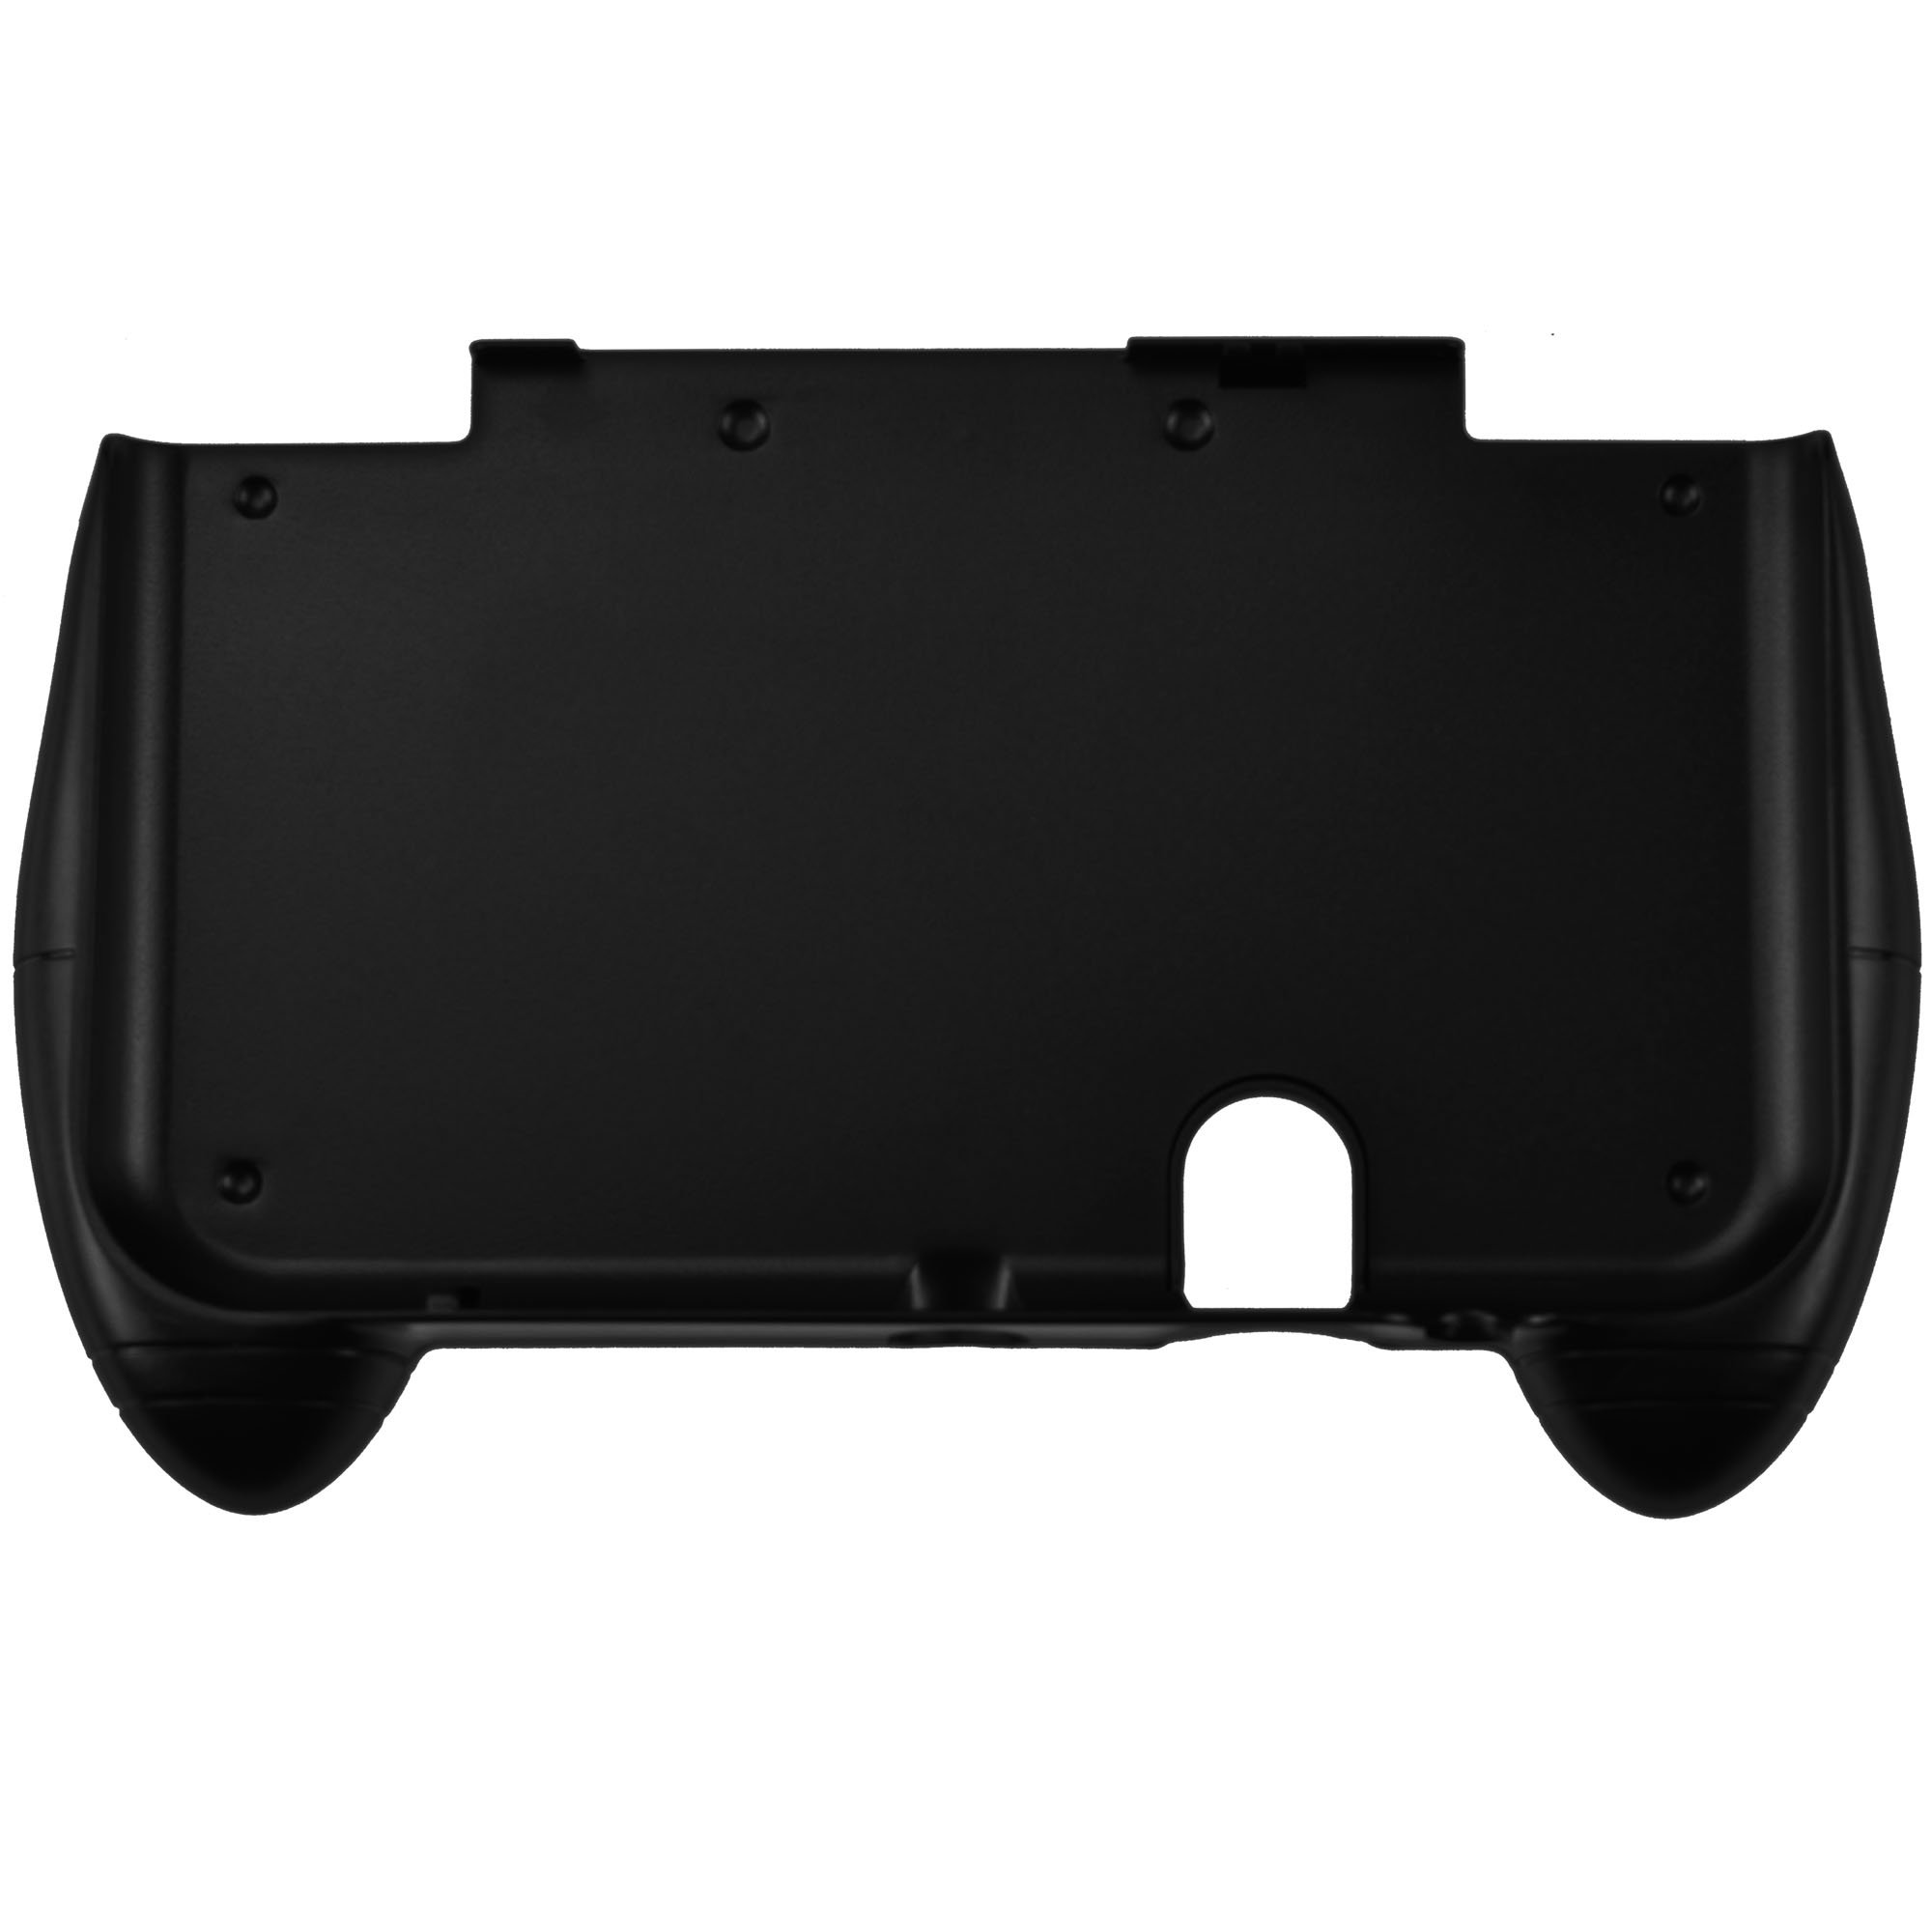 Mcbazel ABS Handle Hand Grip Holder for Nintendo New 3DS XL LL [NOT Nintendo 3DS XL LL] by Mcbazel